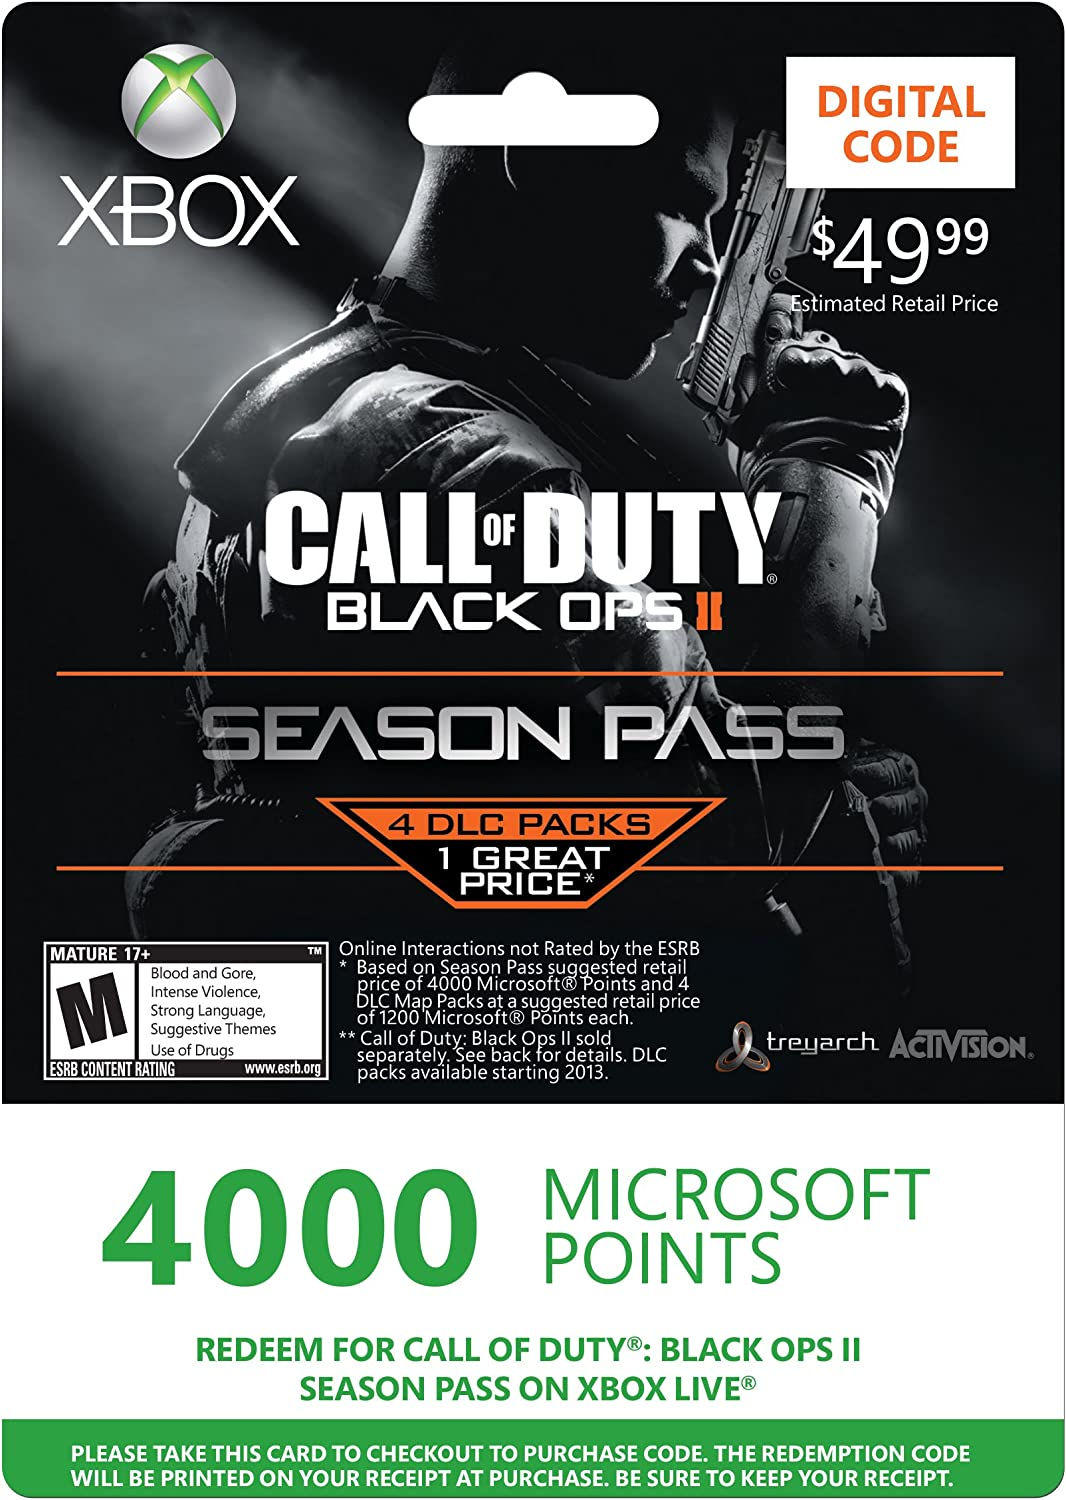 Amazon.com: Xbox LIVE 4000 Microsoft Points for Call of Duty ... on call of duty modern warfare cheat codes for ps3, call of duty zombies cheats, black ops zombies map codes,